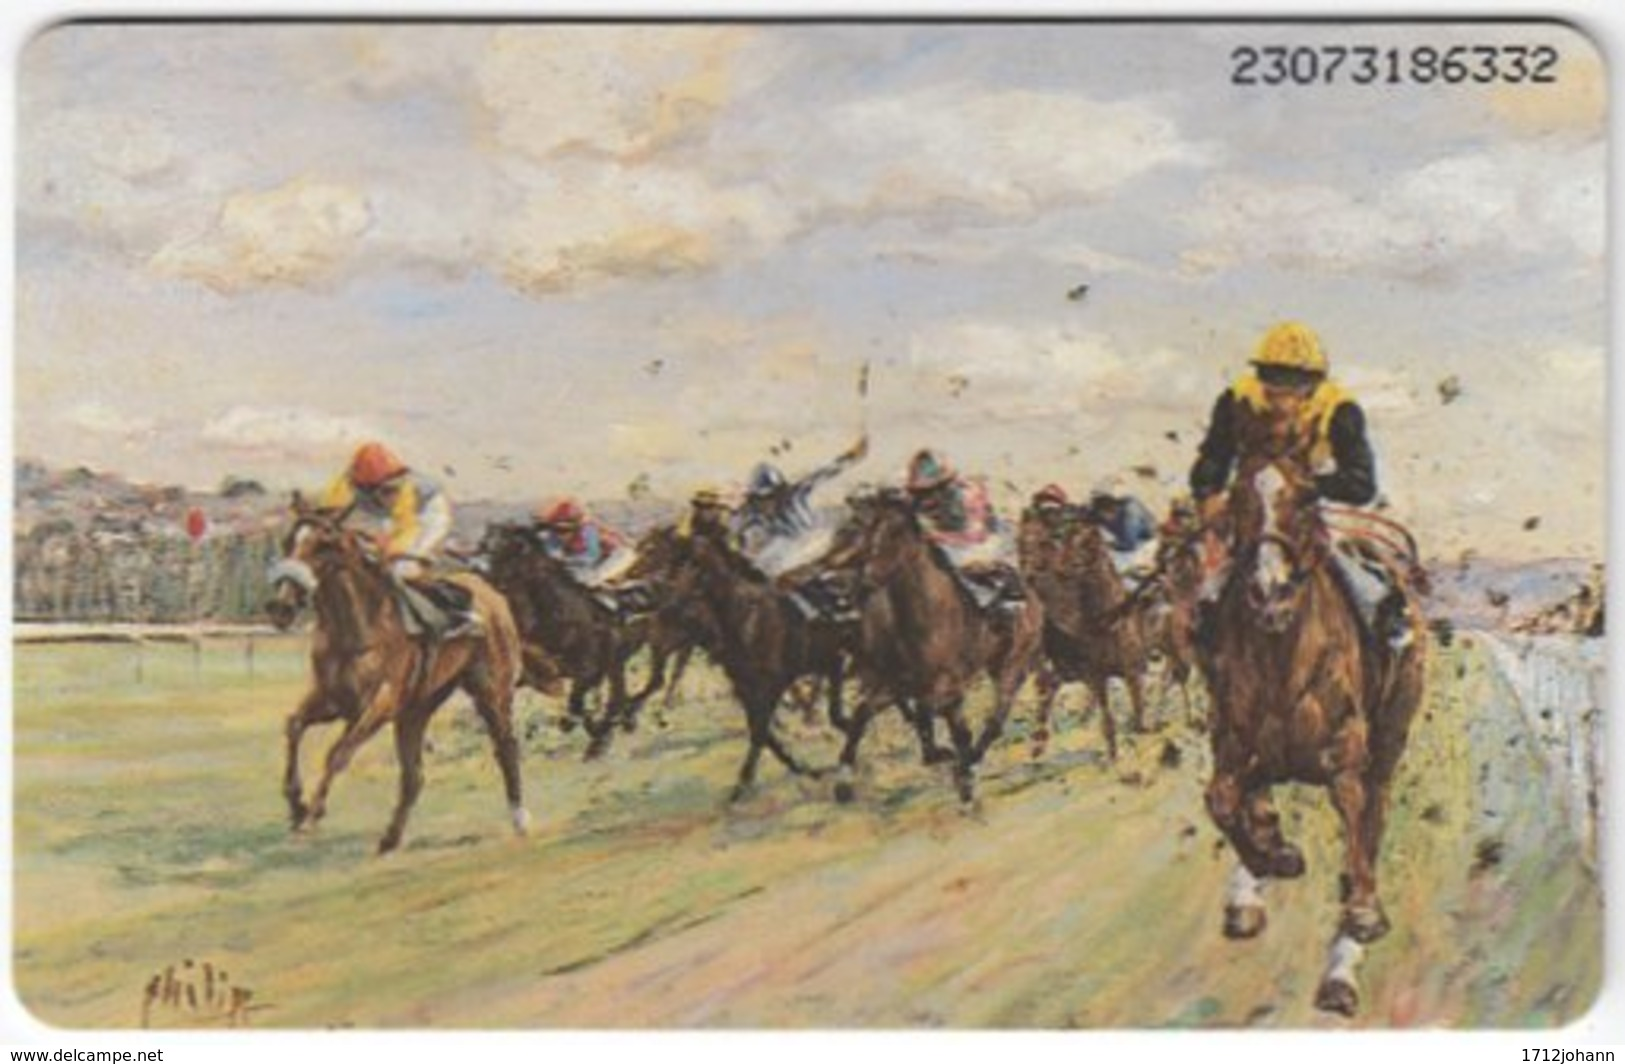 GERMANY K-Serie A-529 - 806 07.93 - Painting, Animal, Horse Race - MINT - Deutschland